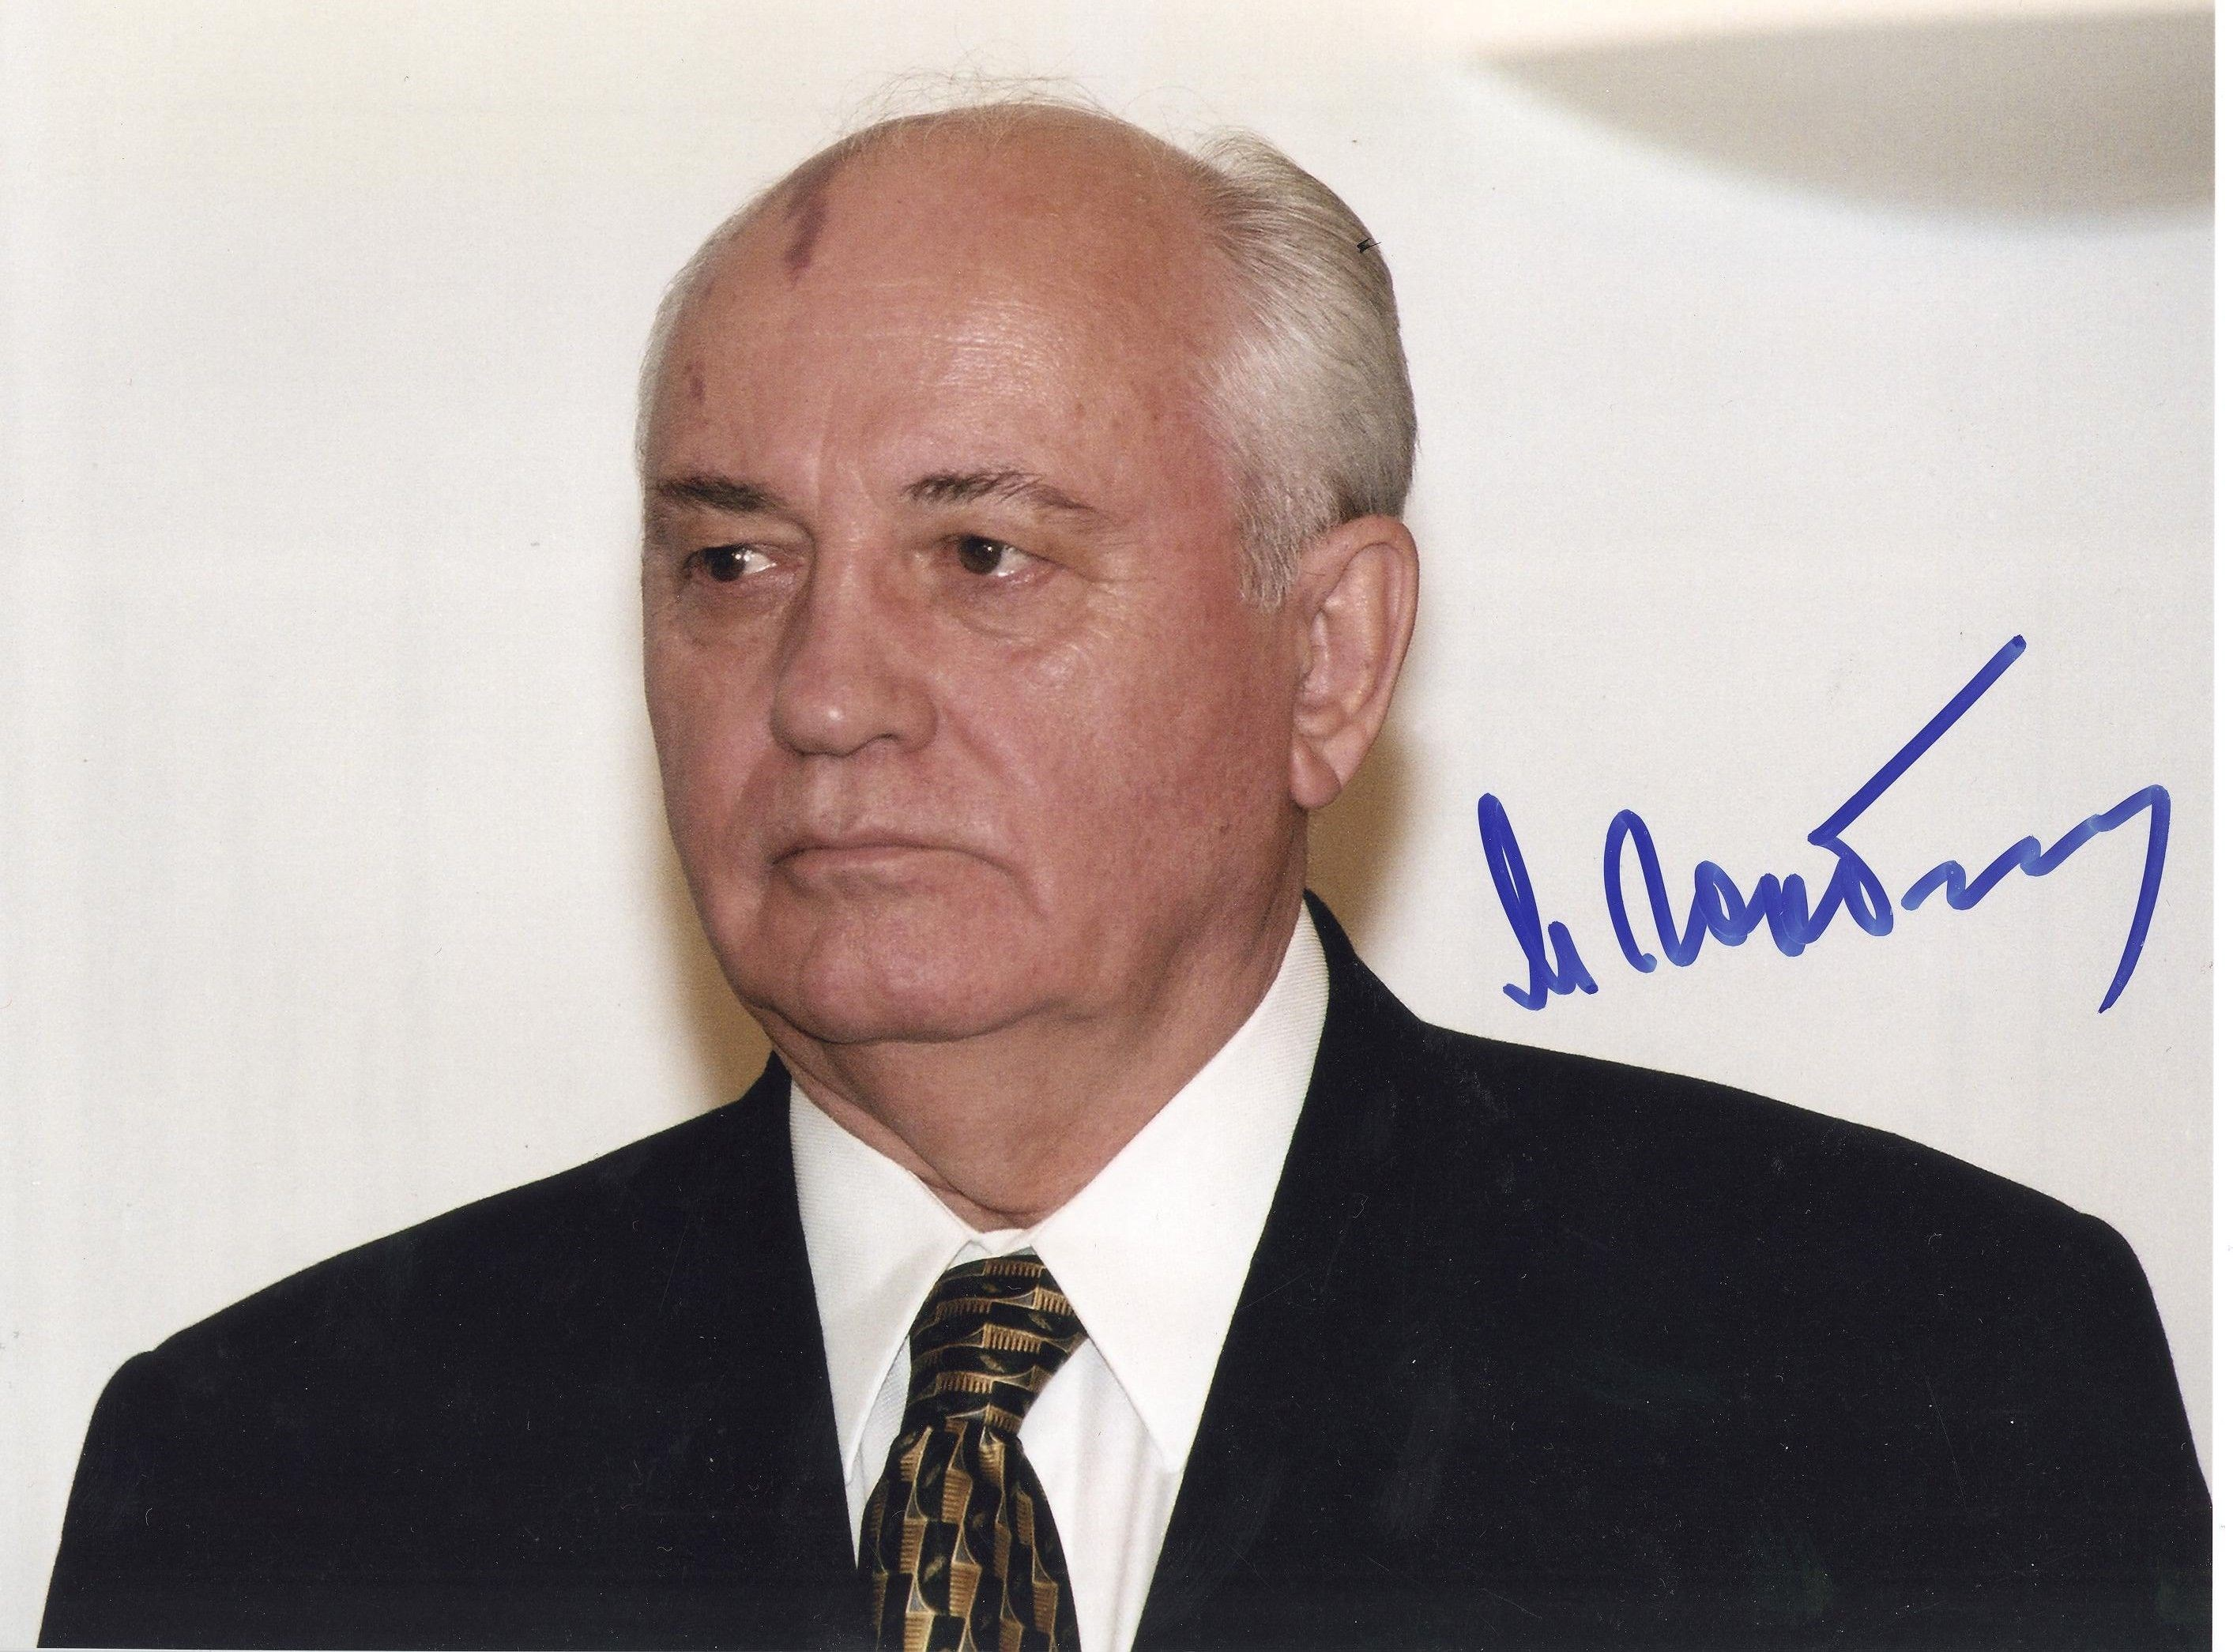 the life of mikhail gorbachev Enjoy the best mikhail gorbachev quotes at brainyquote quotations by mikhail gorbachev, statesman, born march 2, 1931 share with your friends.